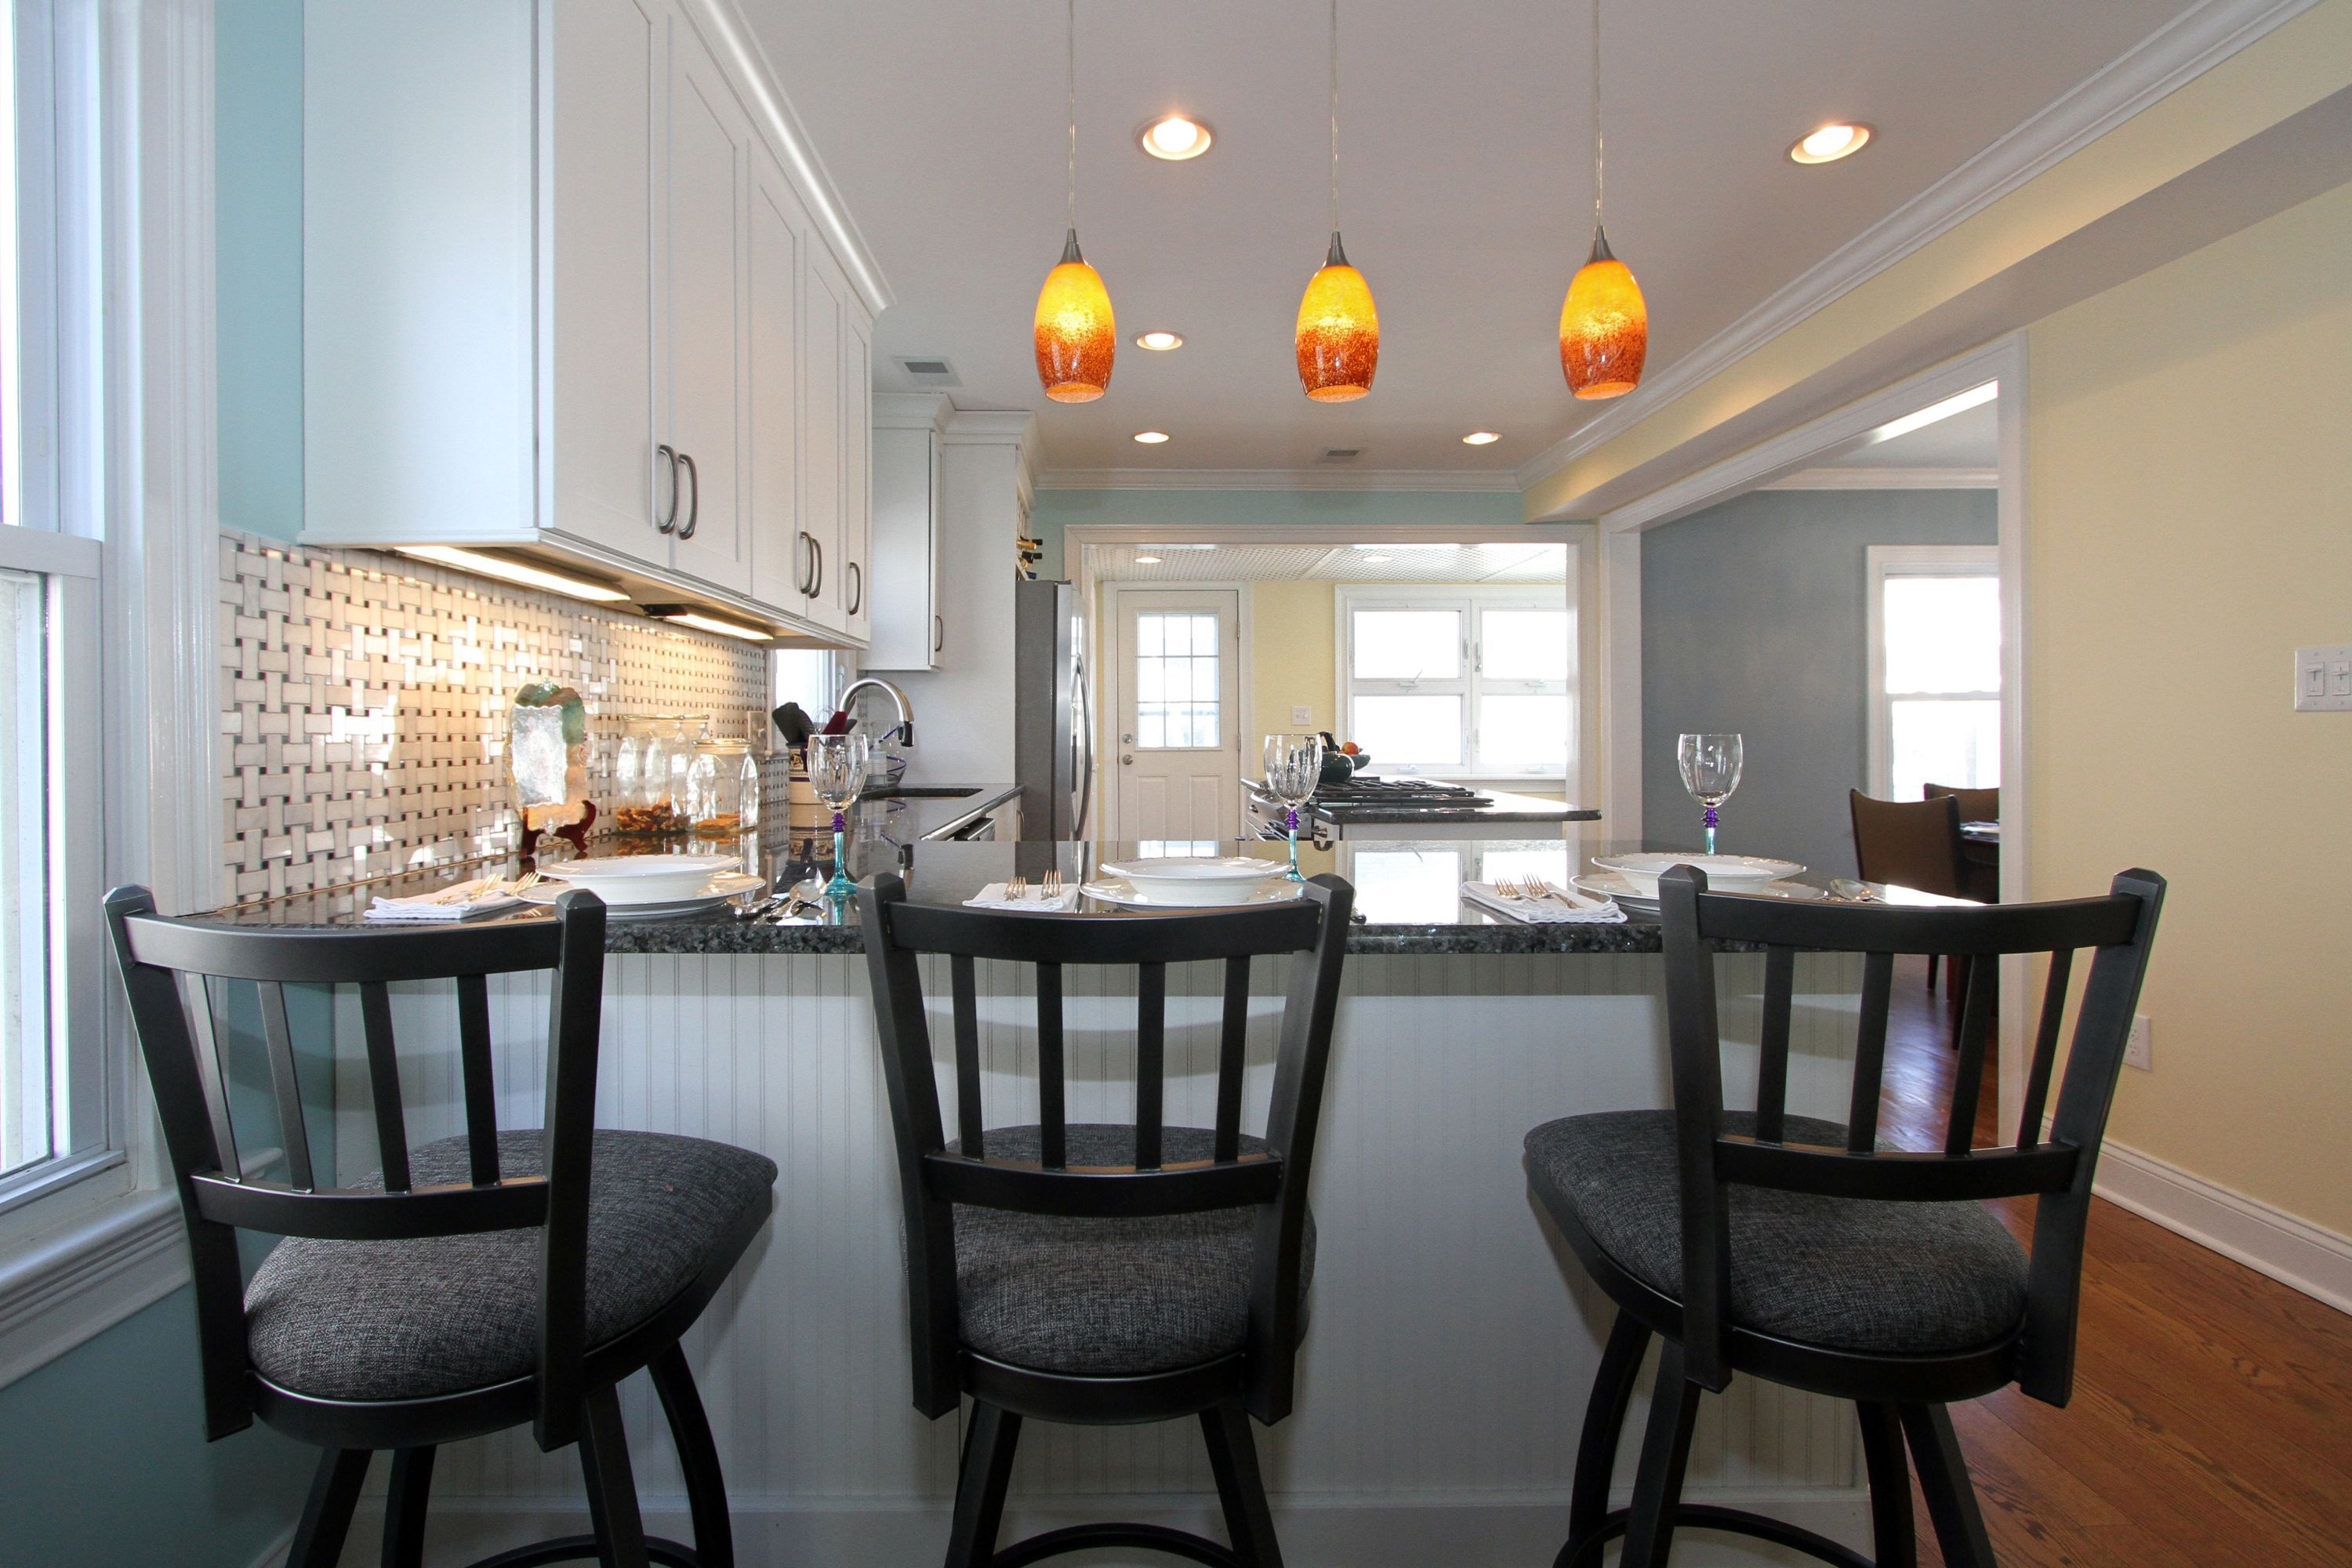 Simple White Open Kitchen With Maple Cabinets, Colorful Pendant Lights,